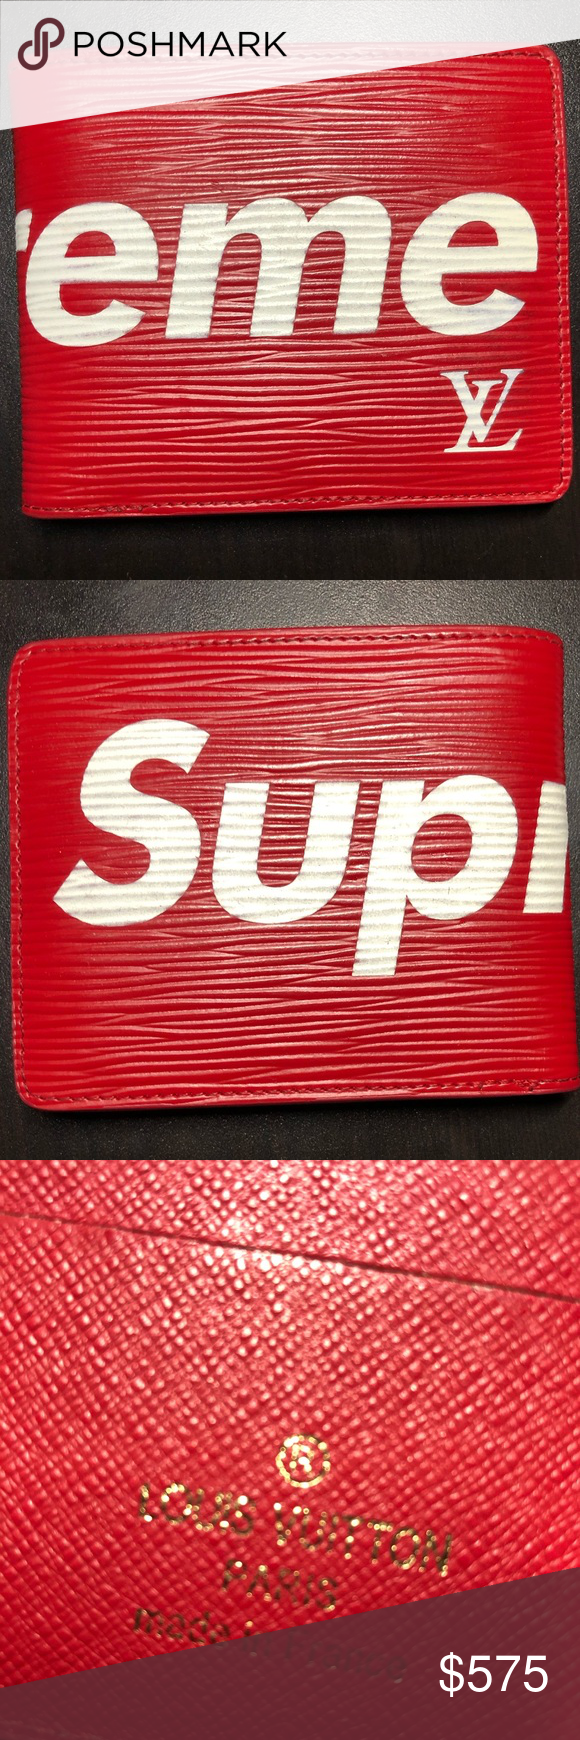 Supreme Louis Vuitton Wallet This Item Has Been In My Possession For Years And I Want To Get Rid Of It At A Louis Vuitton Wallet Louis Vuitton Supreme Vuitton